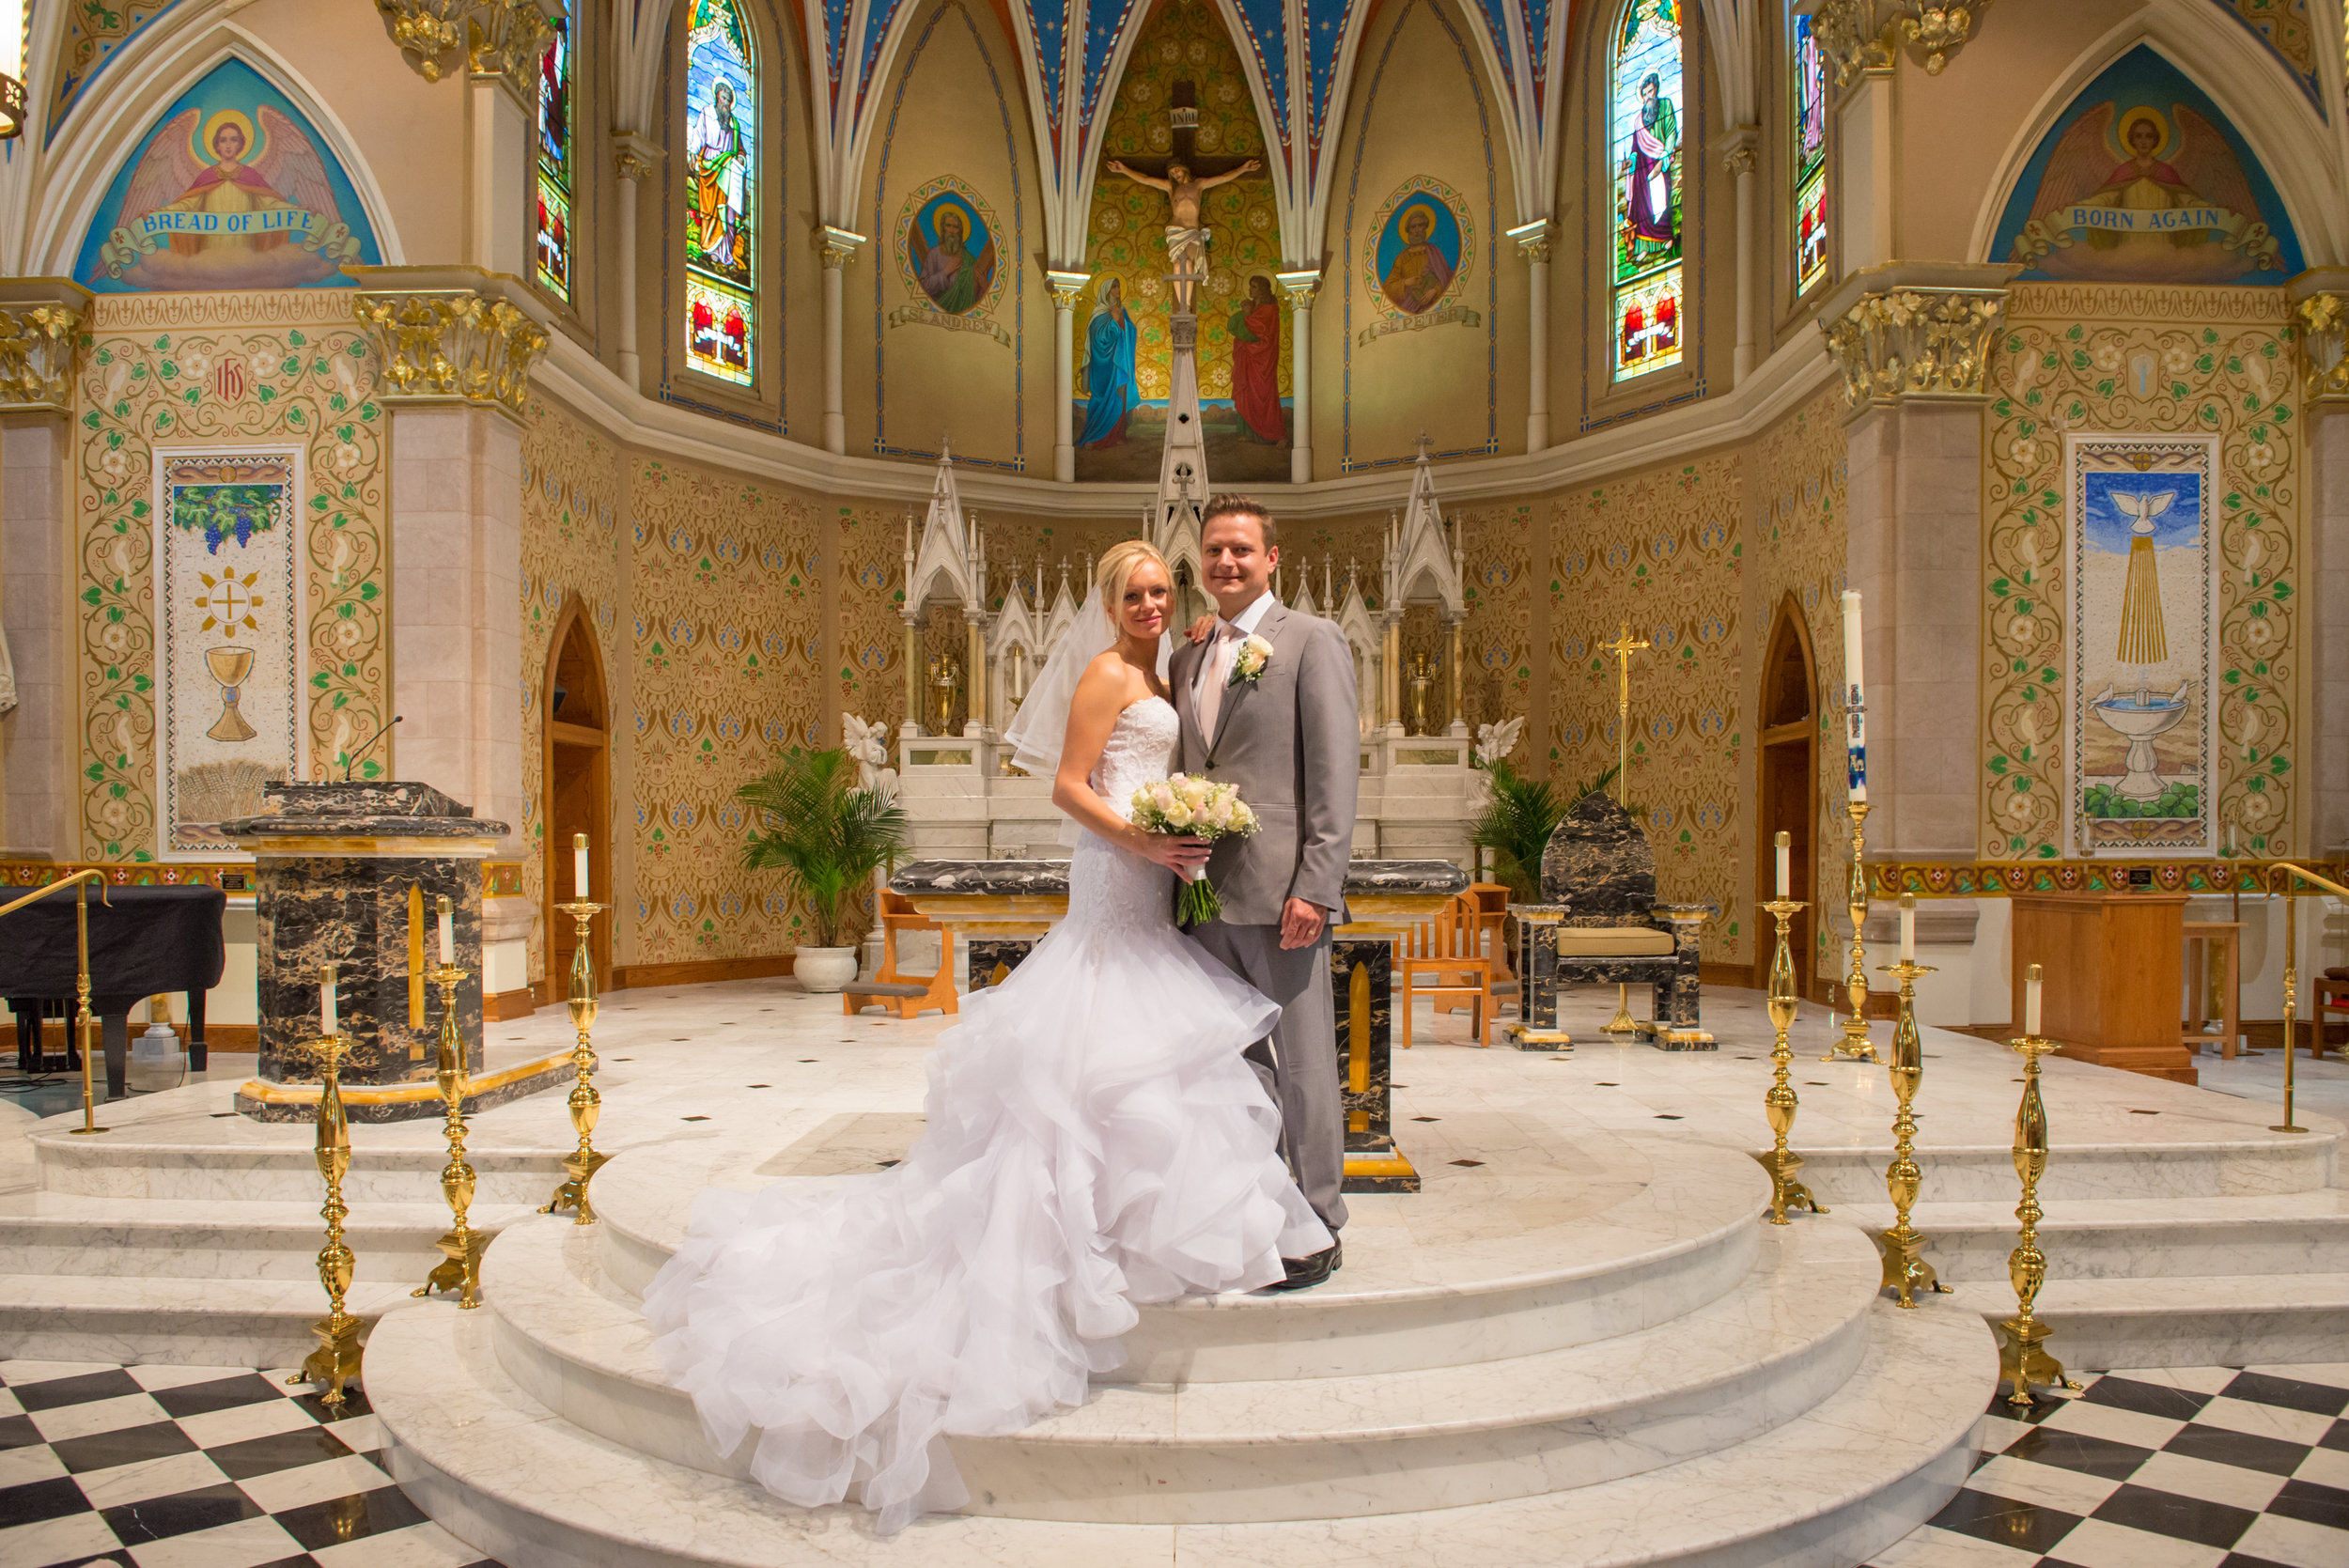 013Koper-Ekiert-Roanoke-Wedding-Virginia-Photographer-mattrossphotography.com.jpg